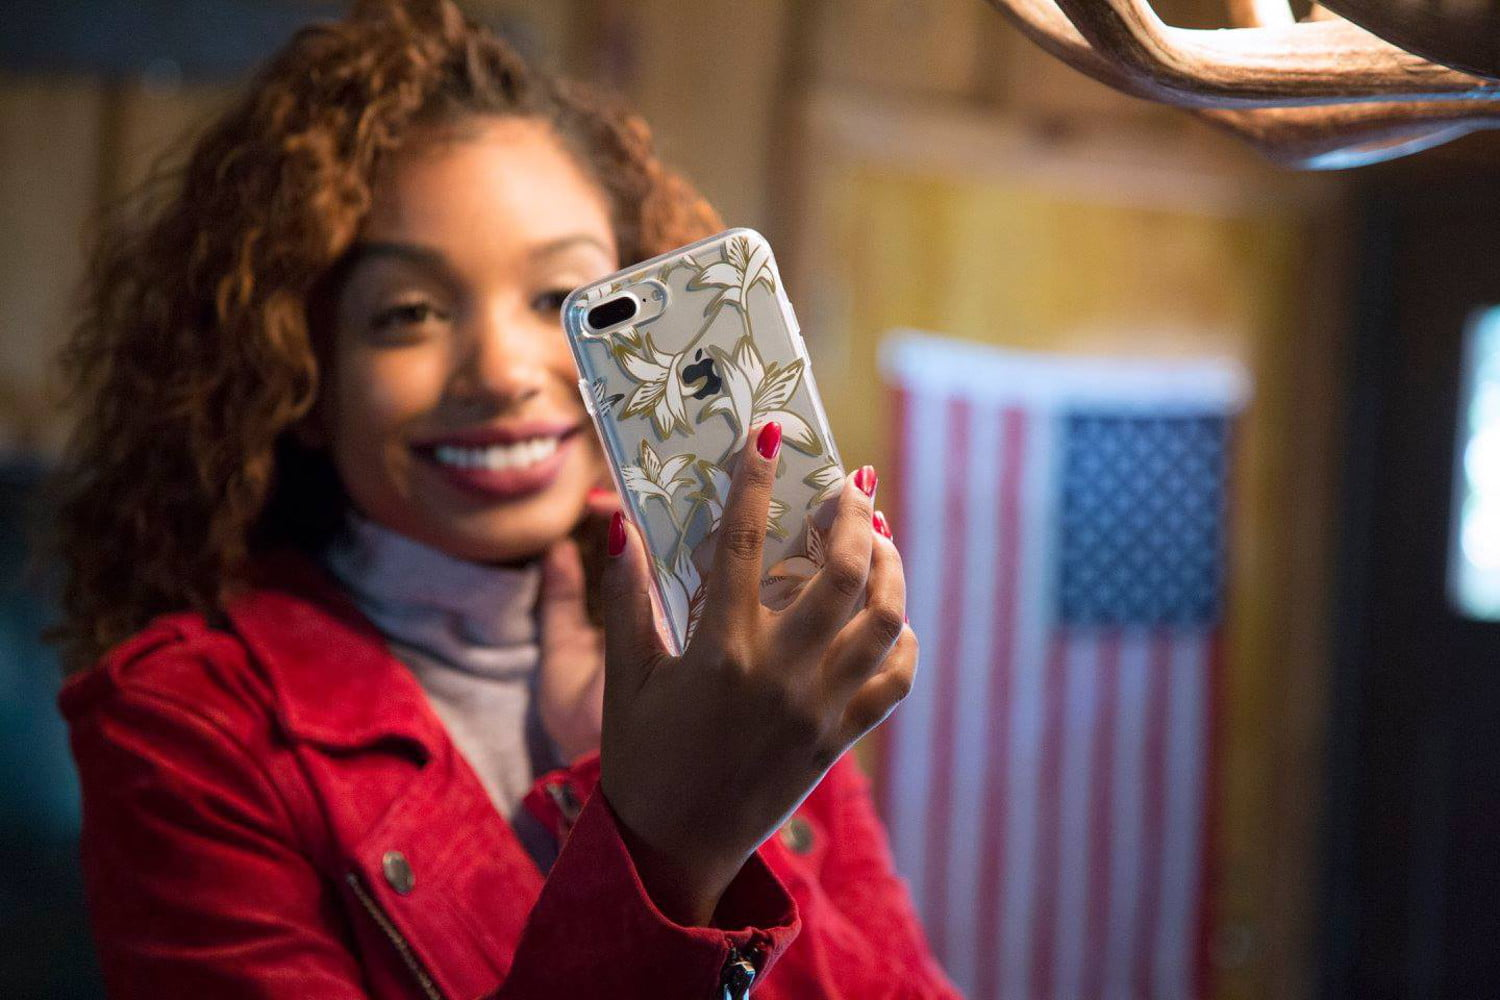 How to pick the best case to protect your device from life's daily hazards